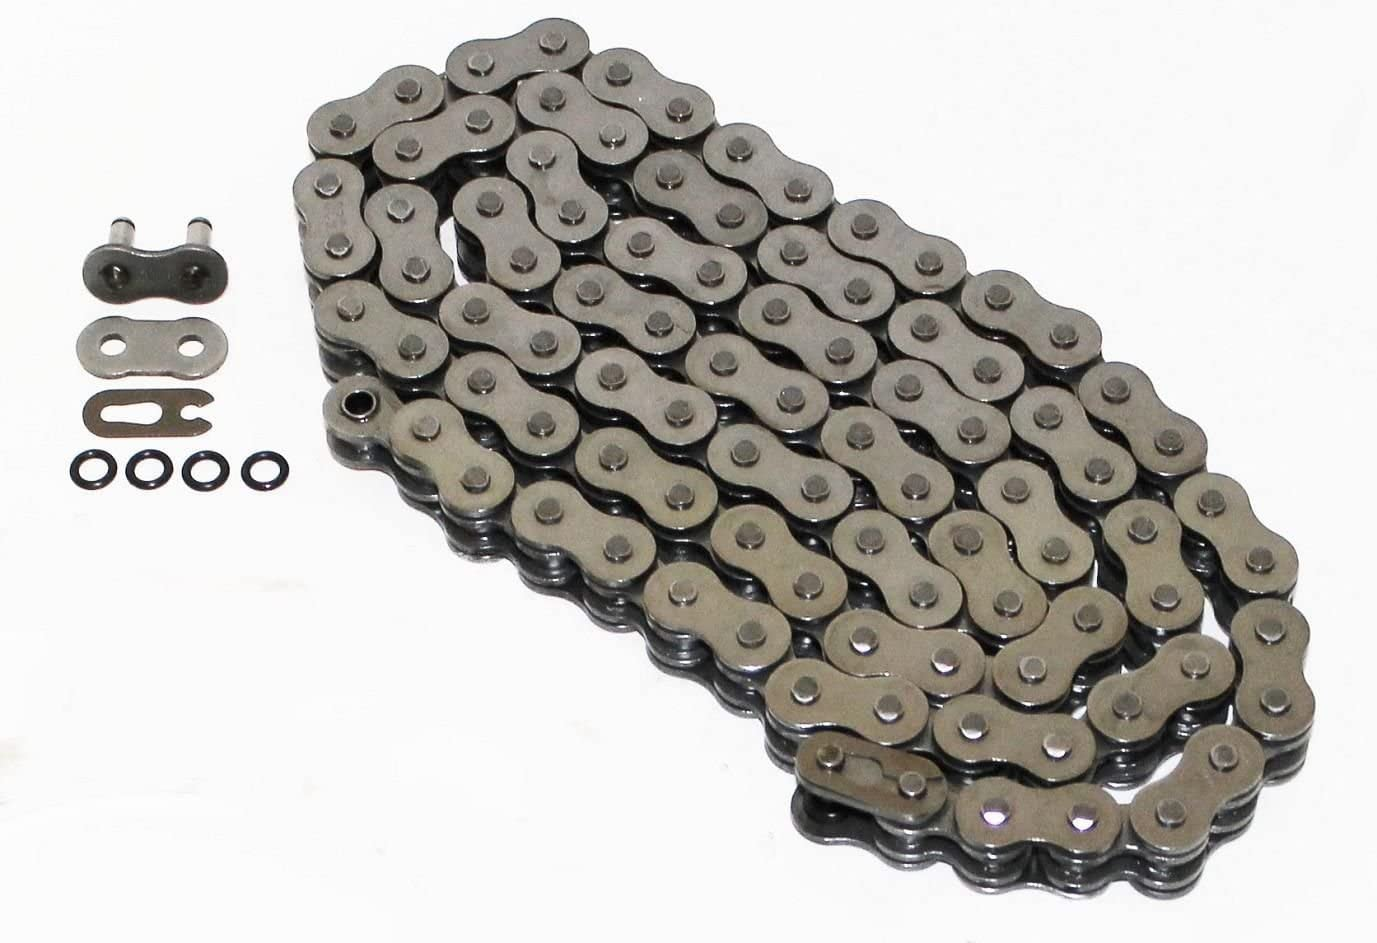 Yellow Non O-Ring Chain /& Silver Sprocket 15//40 102L 89-93 fits Yamaha YFM350 Warrior